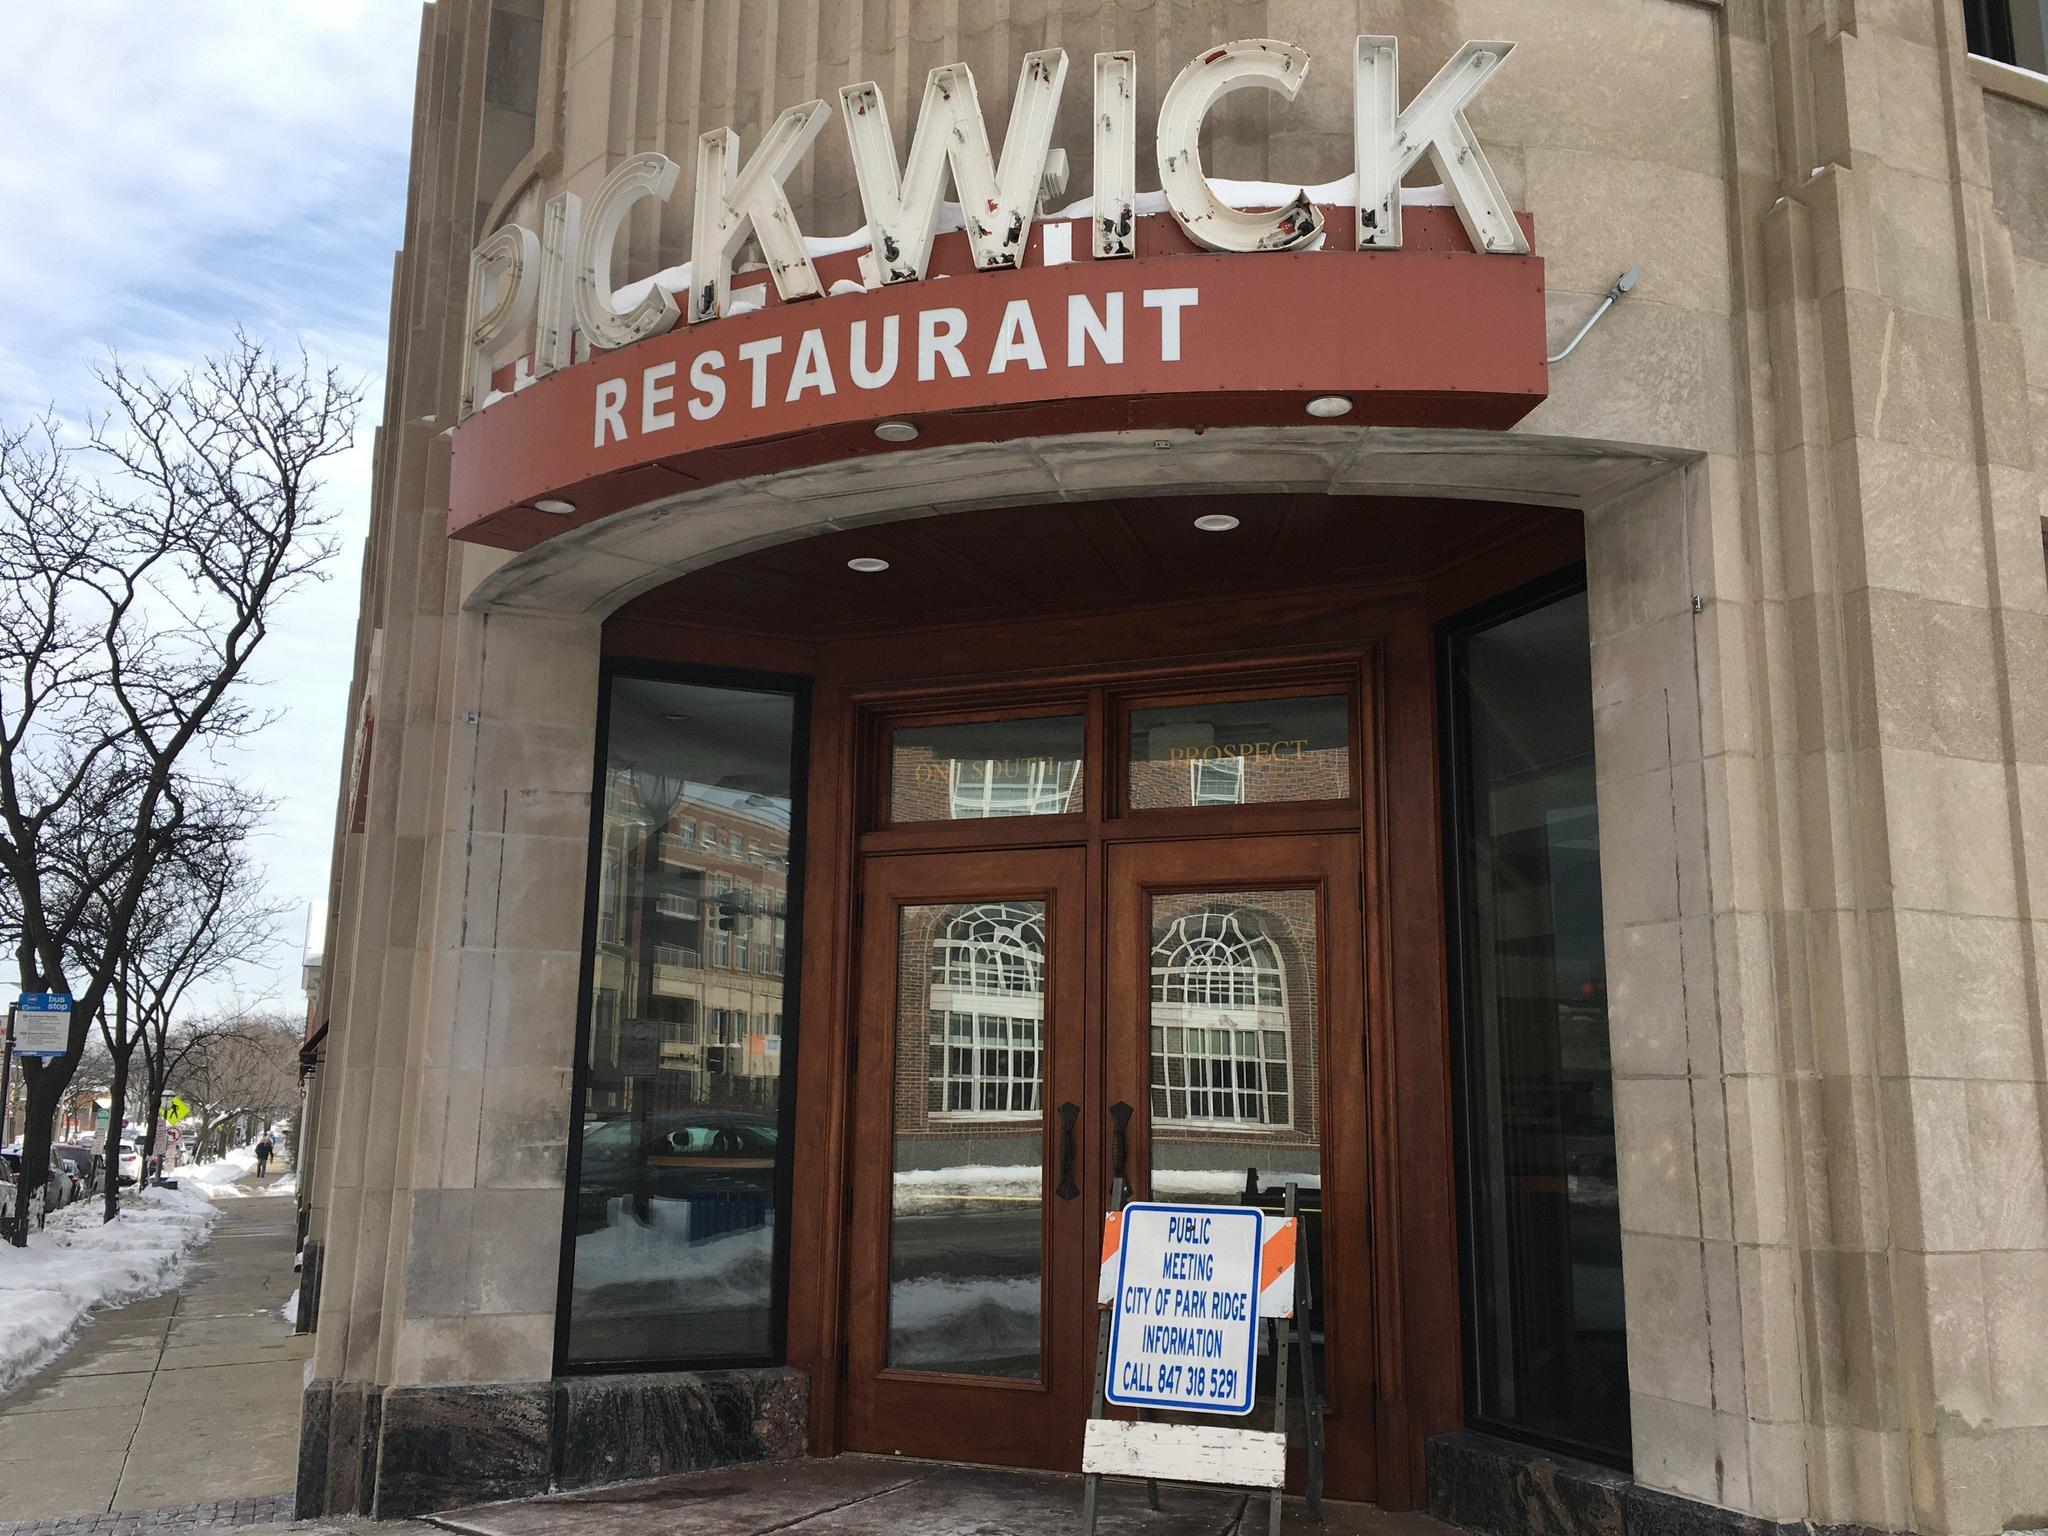 Eye Care Chain Proposed For Former Pickwick Restaurant In Park Ridge Herald Advocate